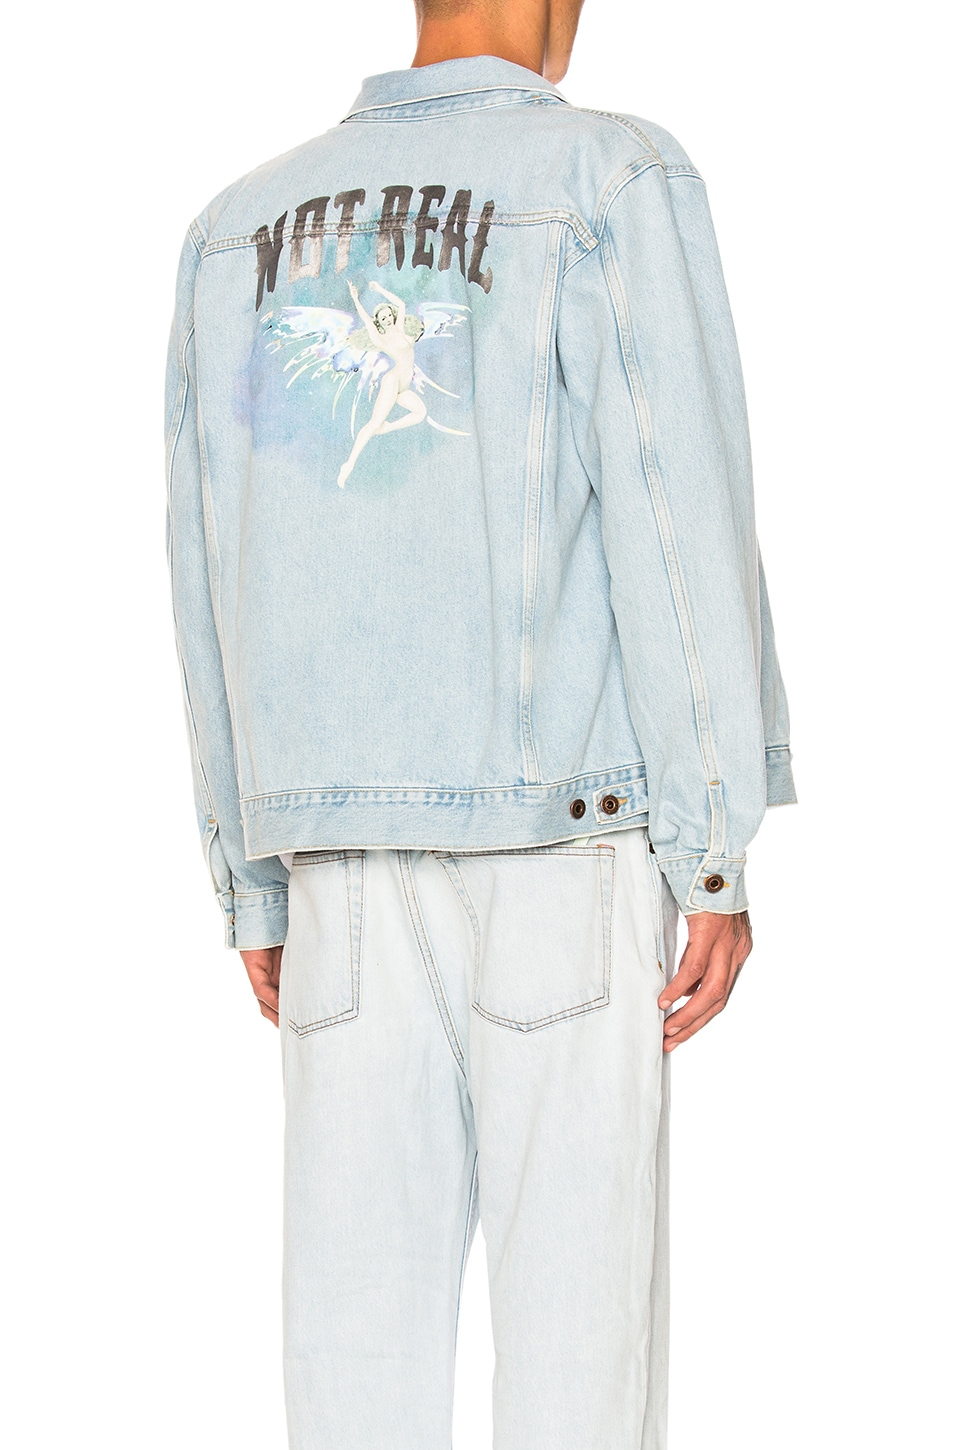 a96ca17f4914 OFF-WHITE Not Real Angel Oversized Denim Jacket in Bleach Multi ...